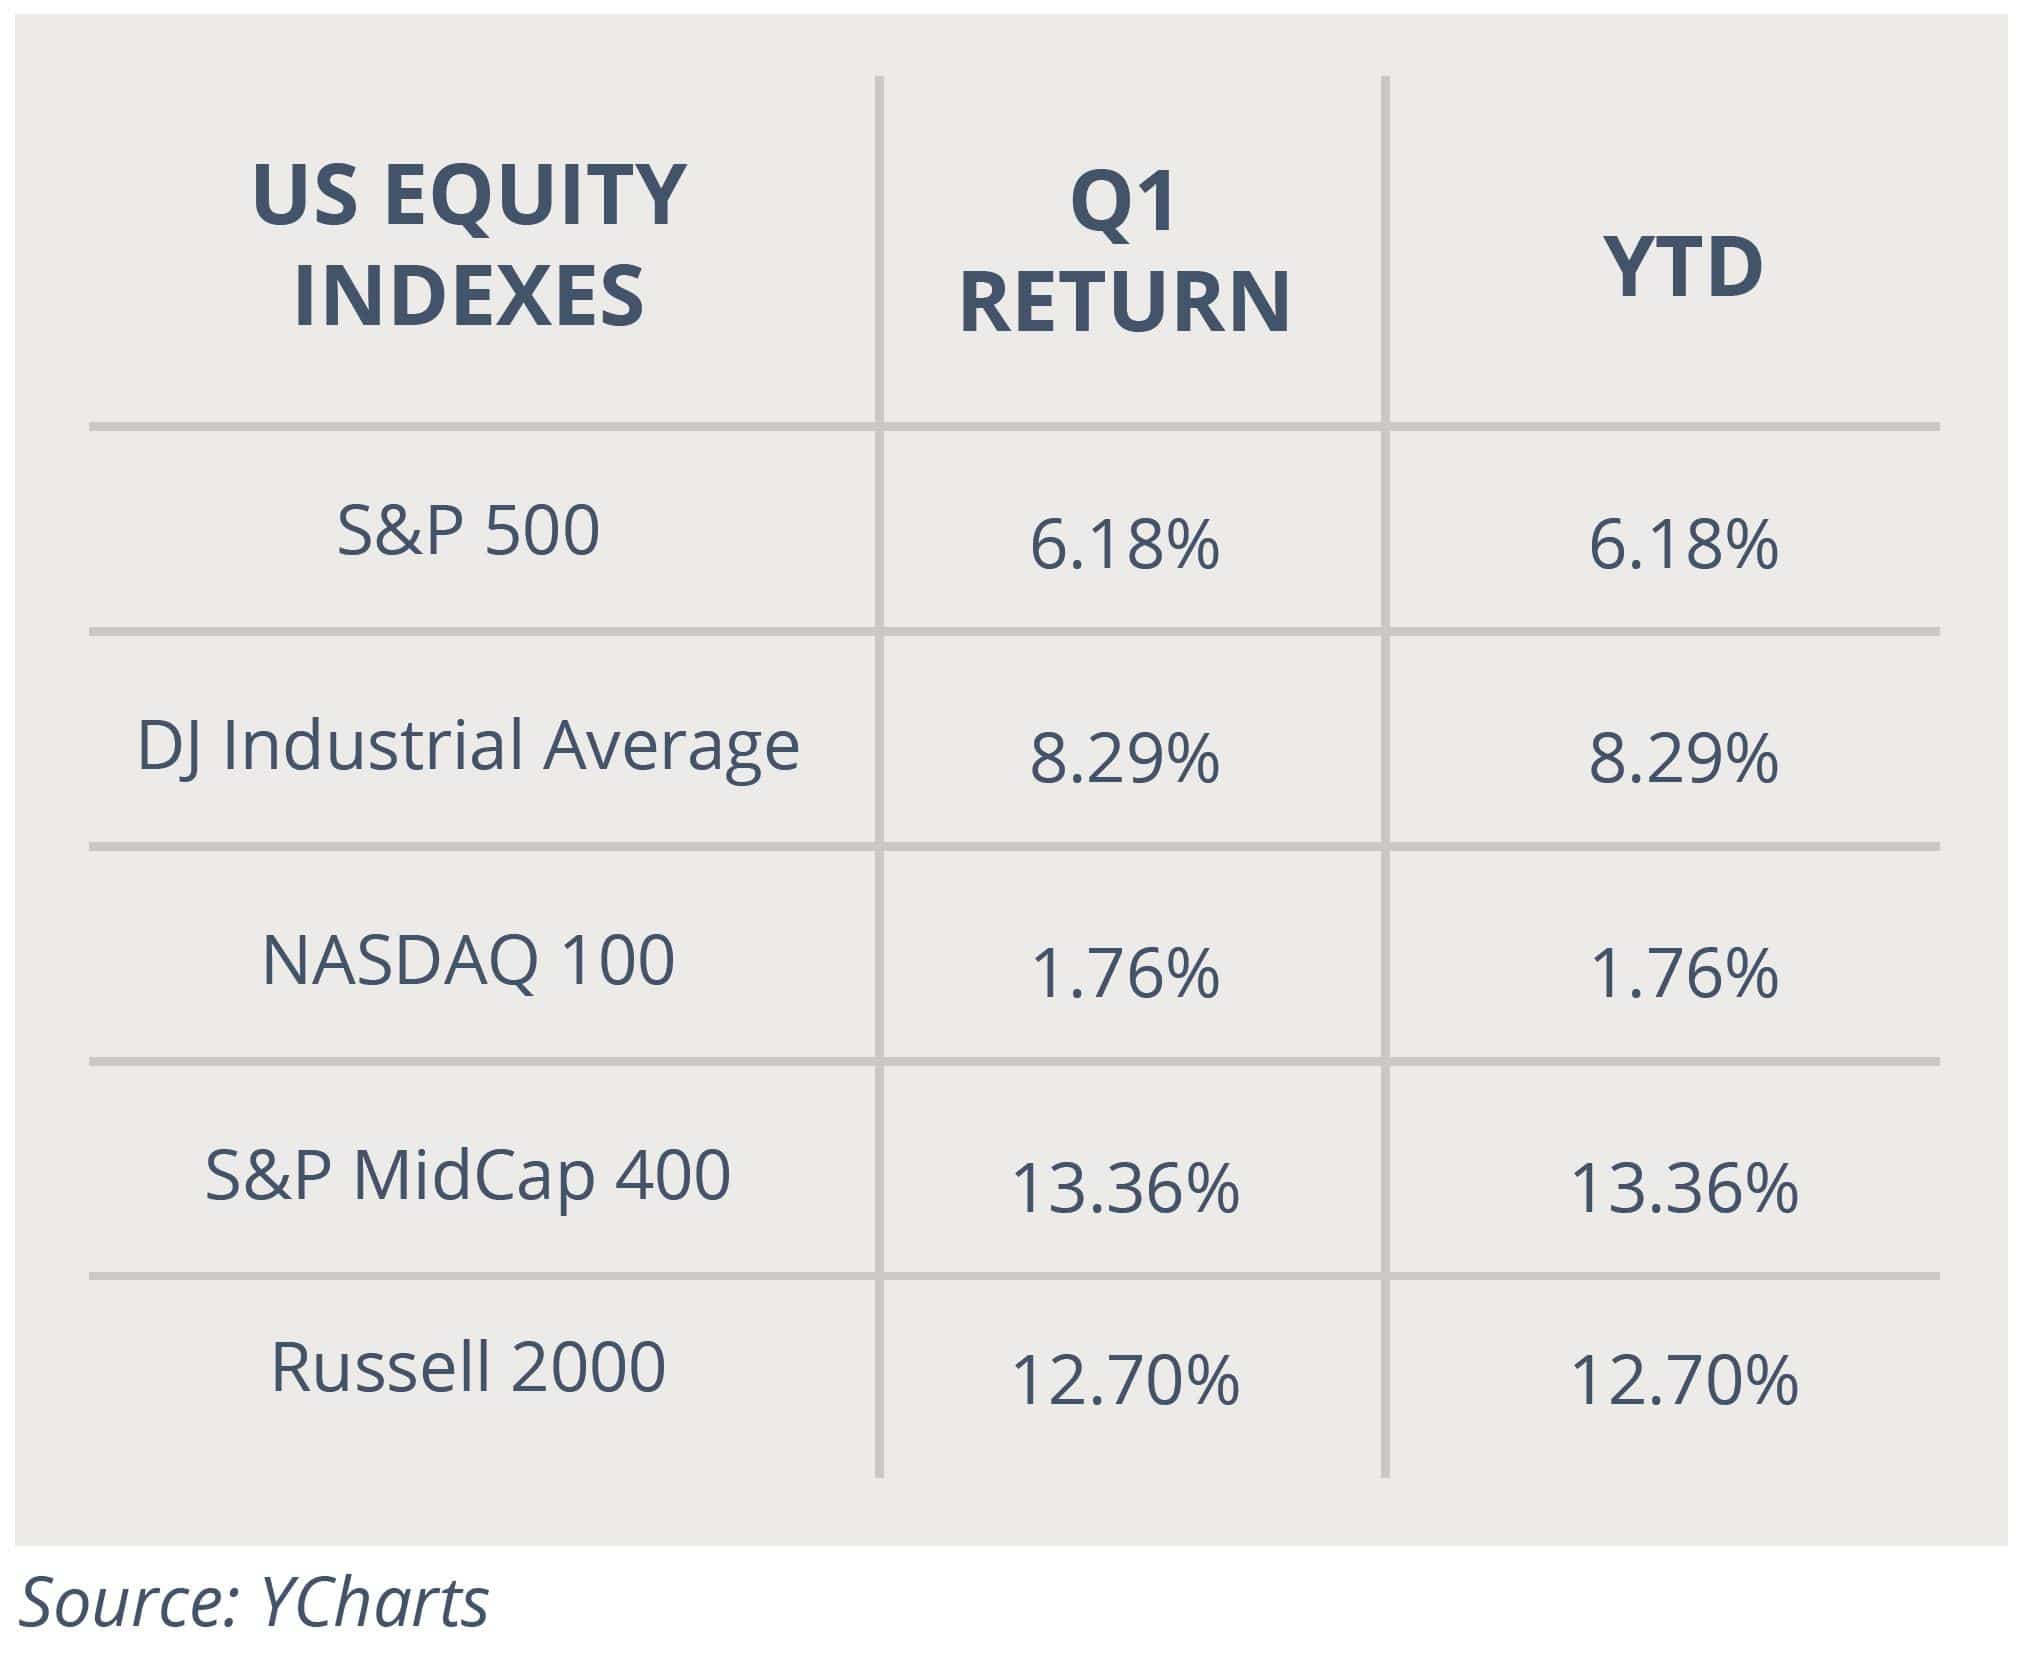 US Equity Indexes